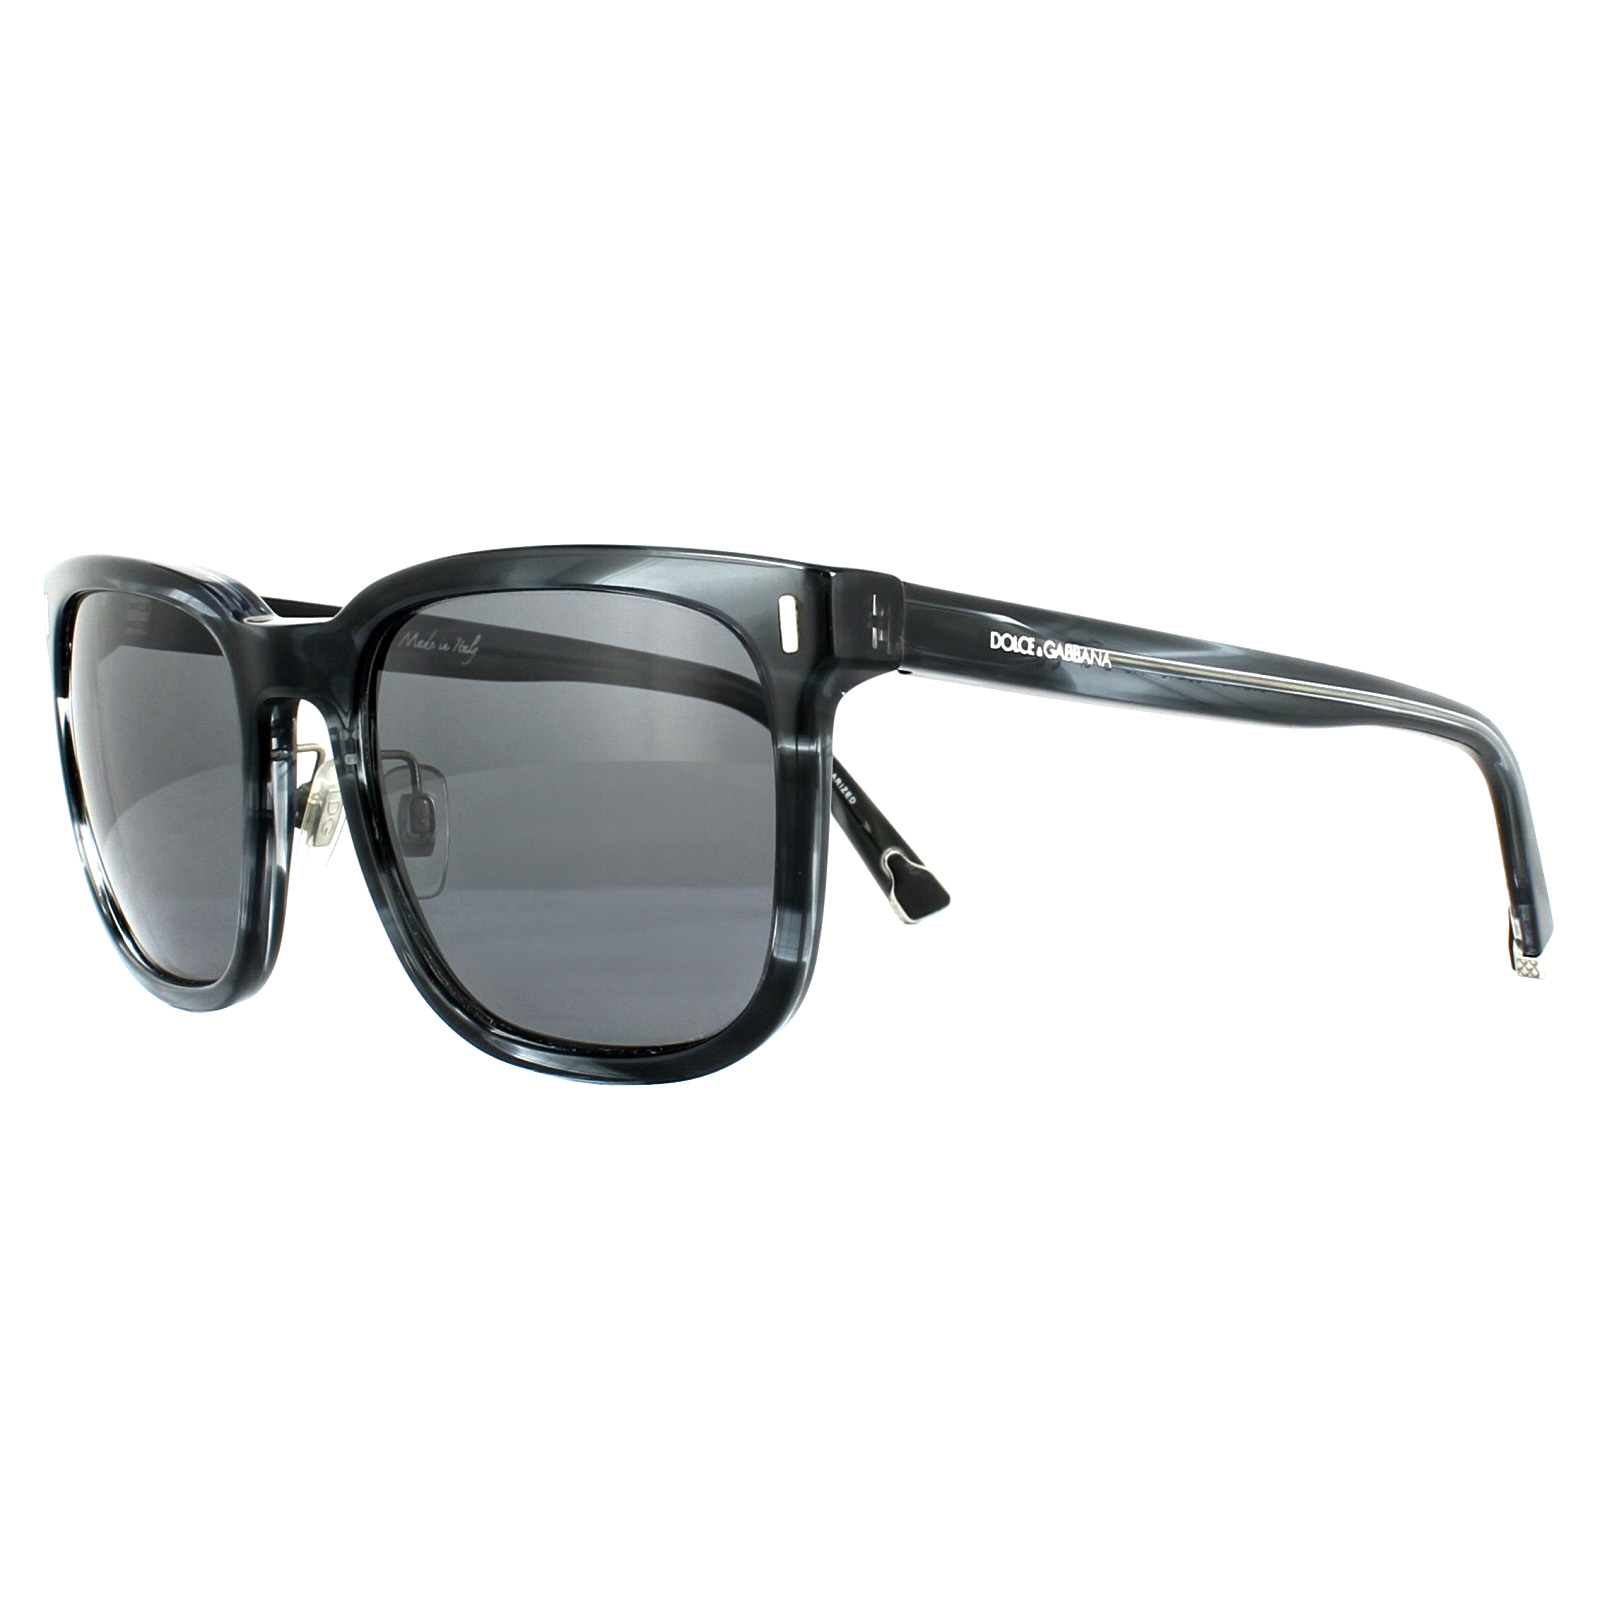 a11401abfc0c Sentinel Dolce & Gabbana Sunglasses 4271 292481 Striped Anthracite Grey  Polarized